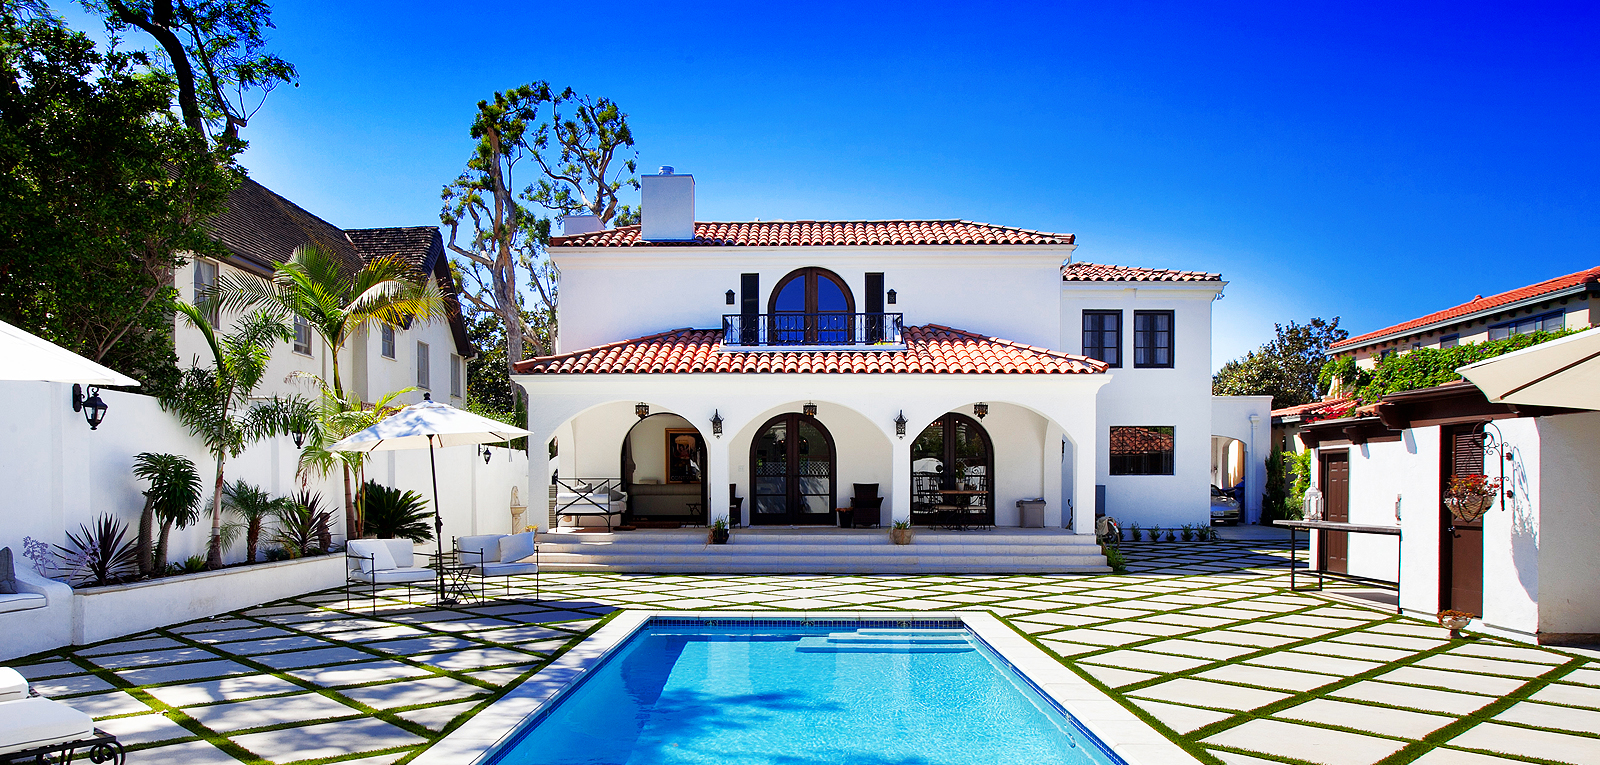 Los angeles luxury real estate beverly hills real estate for Luxury homes in hollywood hills